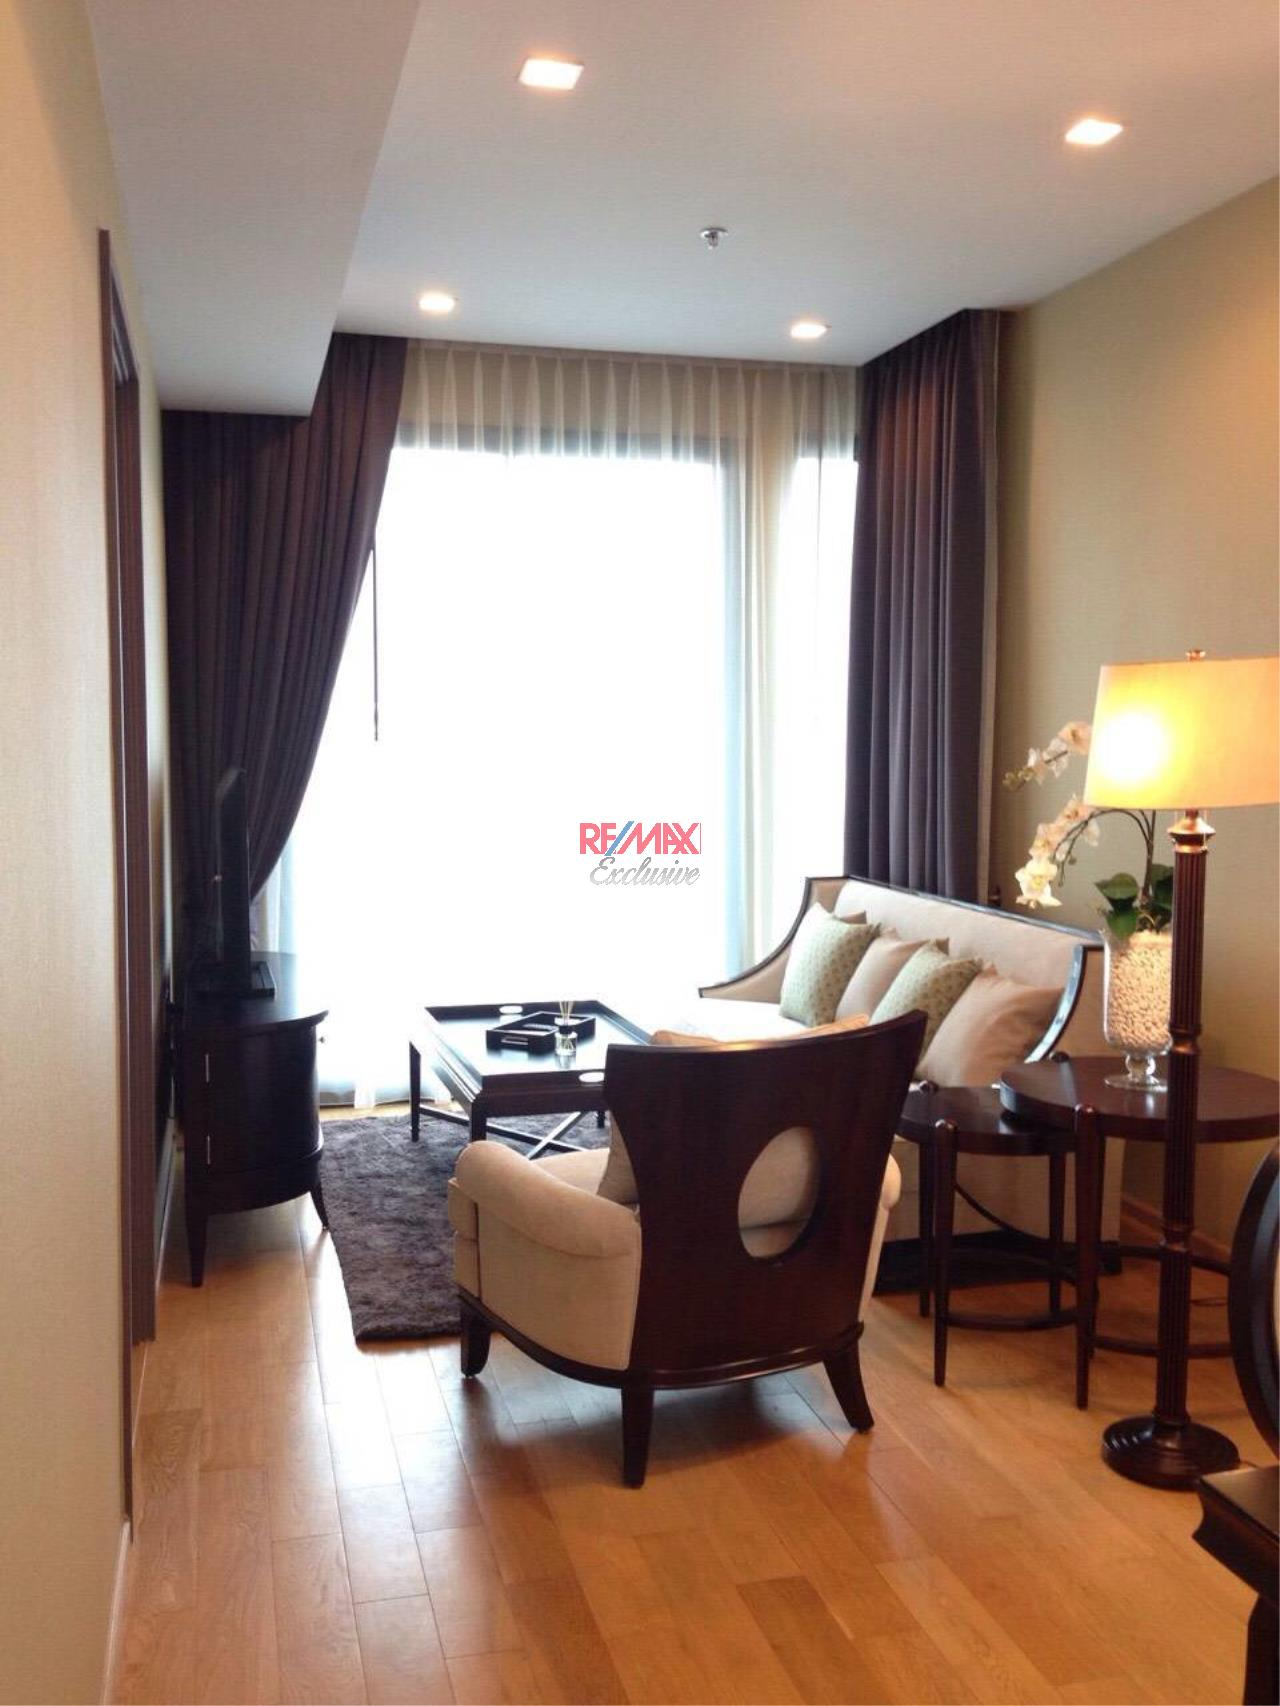 RE/MAX Exclusive Agency's The Keyne By Sansiri 2 Bedrooms For Rent 70,000 THB 2